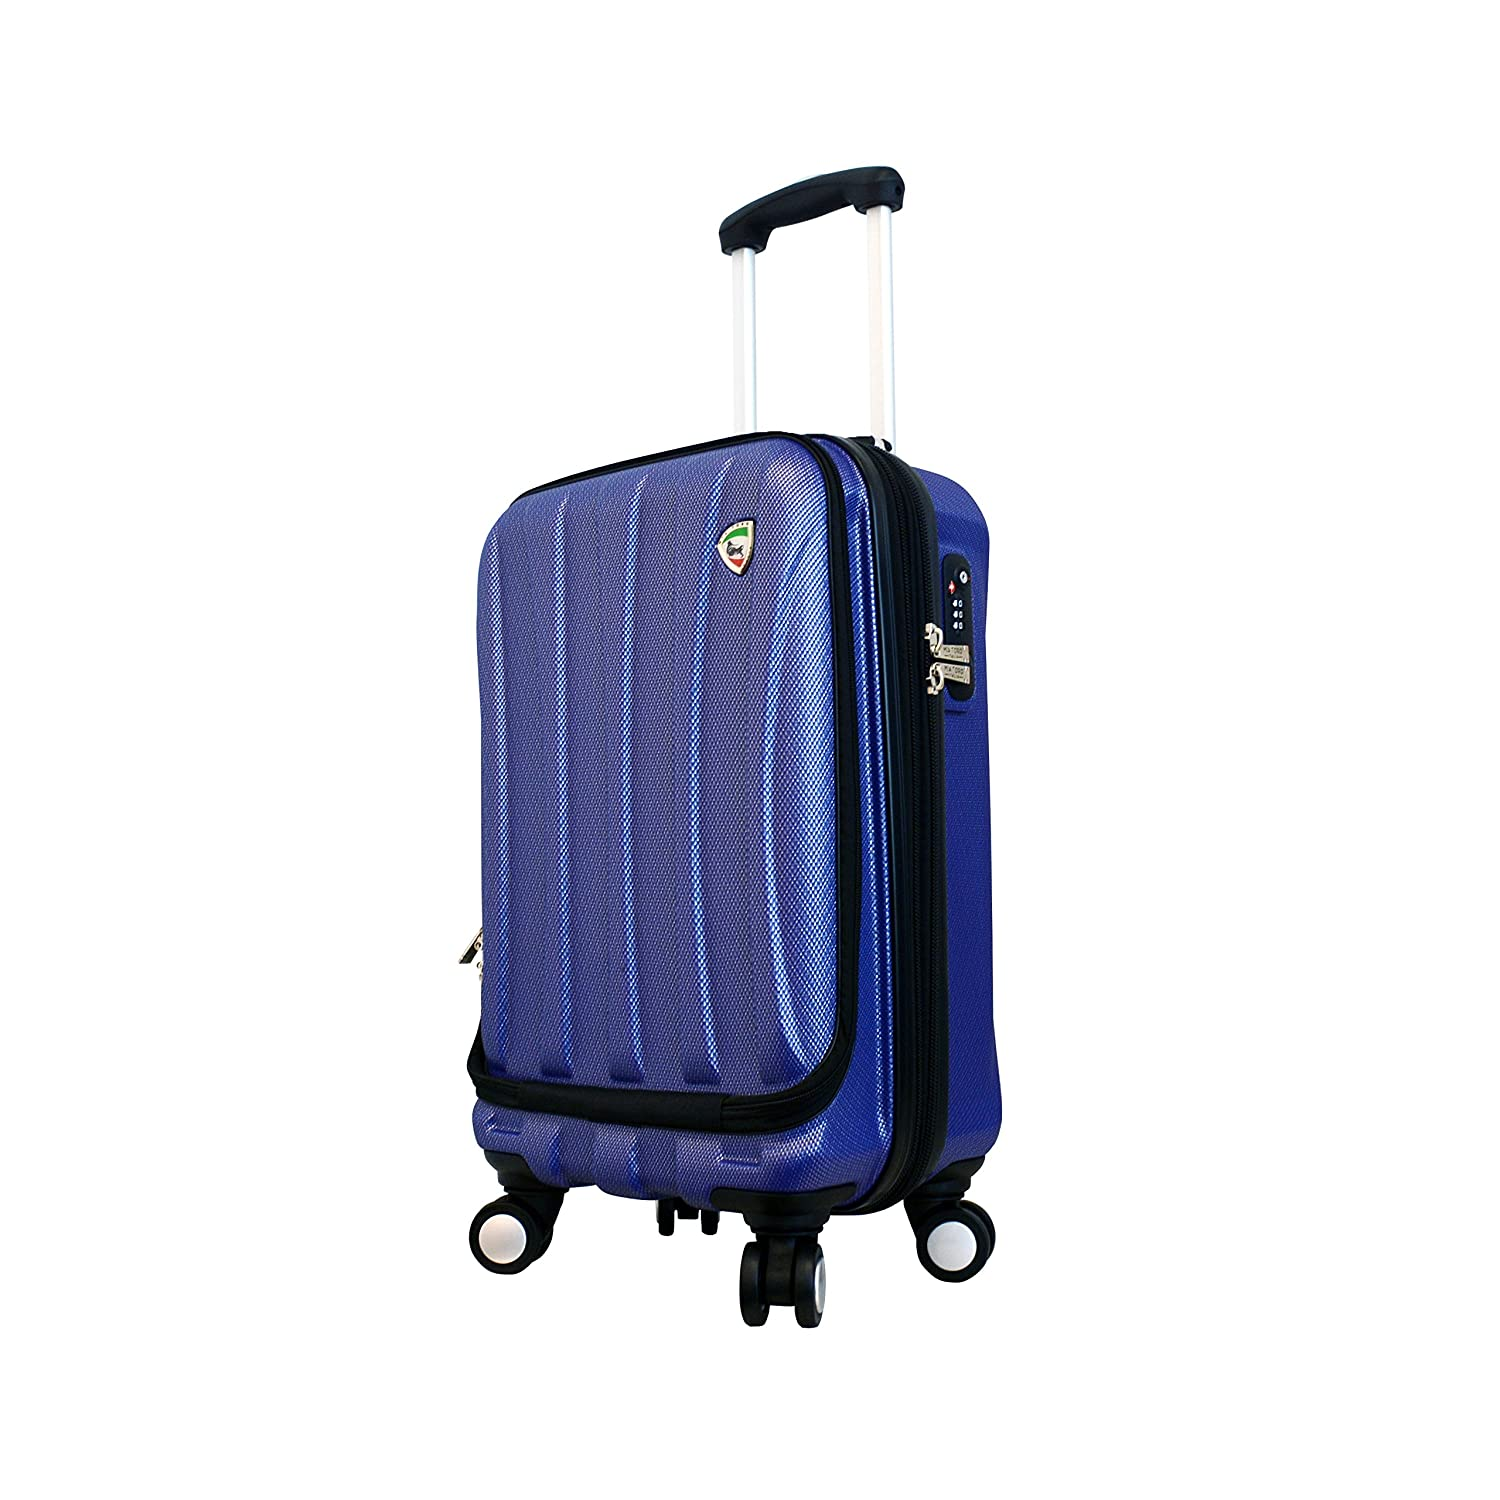 Image of 20' Mia Toro Luggage Tasca Fusion Armor-Flex Hardside Composite Expandable Scratch-Resistant Spinner Luggage with Compression Straps